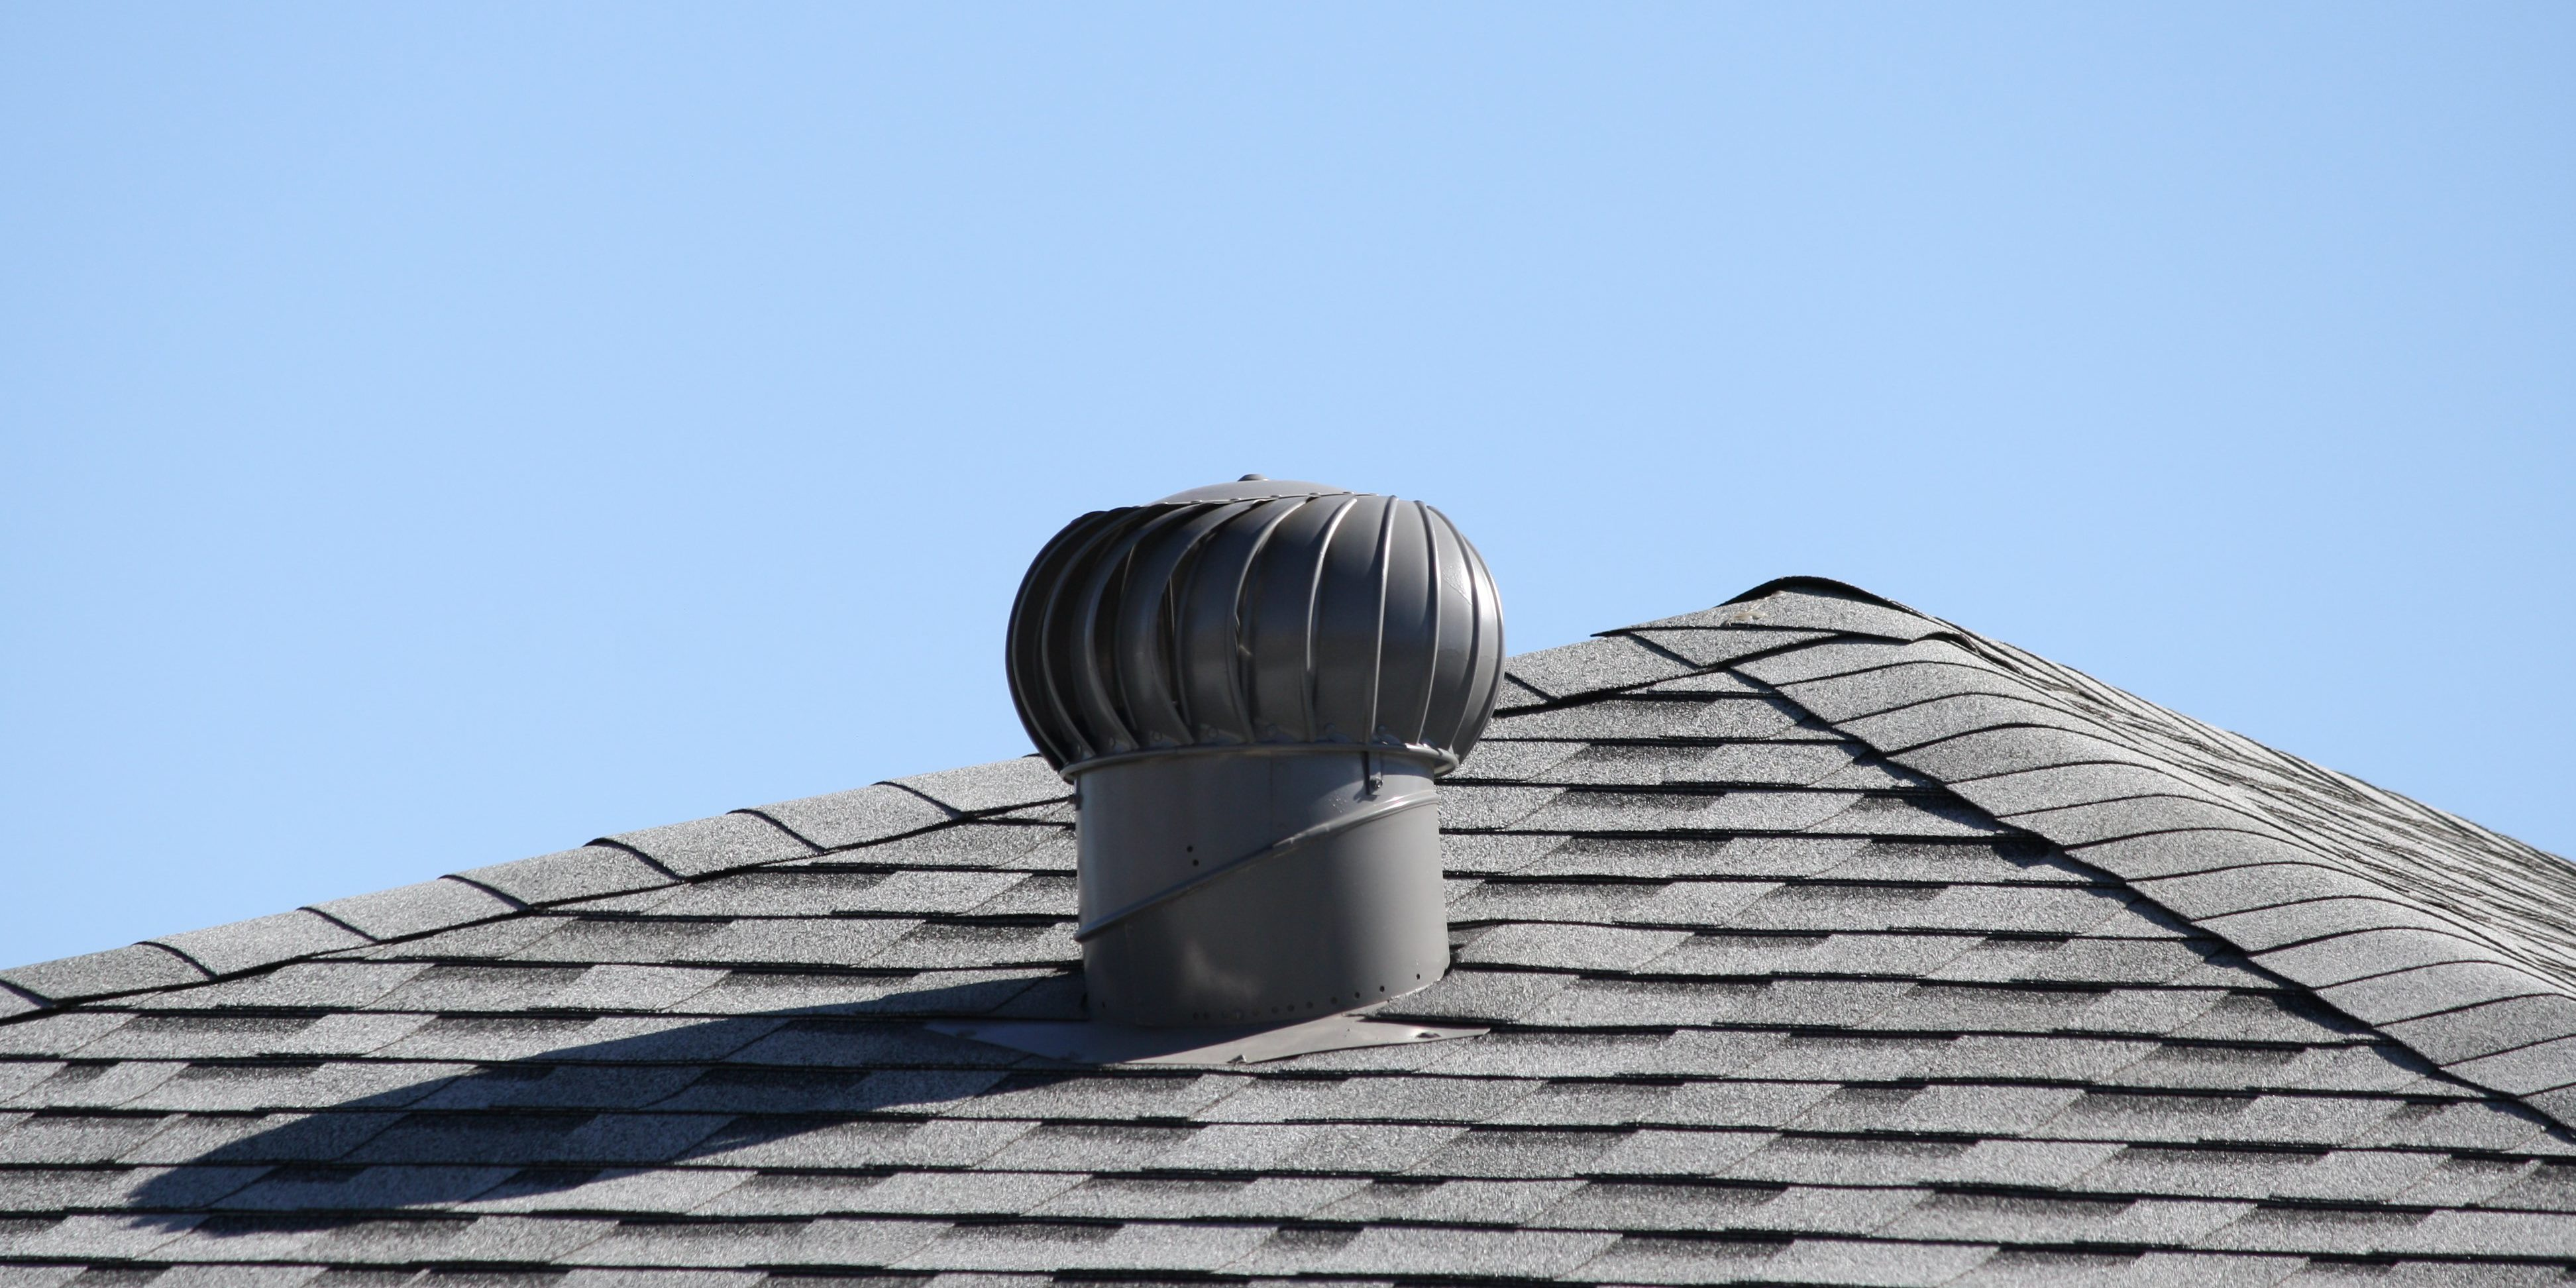 Why Is It Important To Have Proper Roof Ventilation?